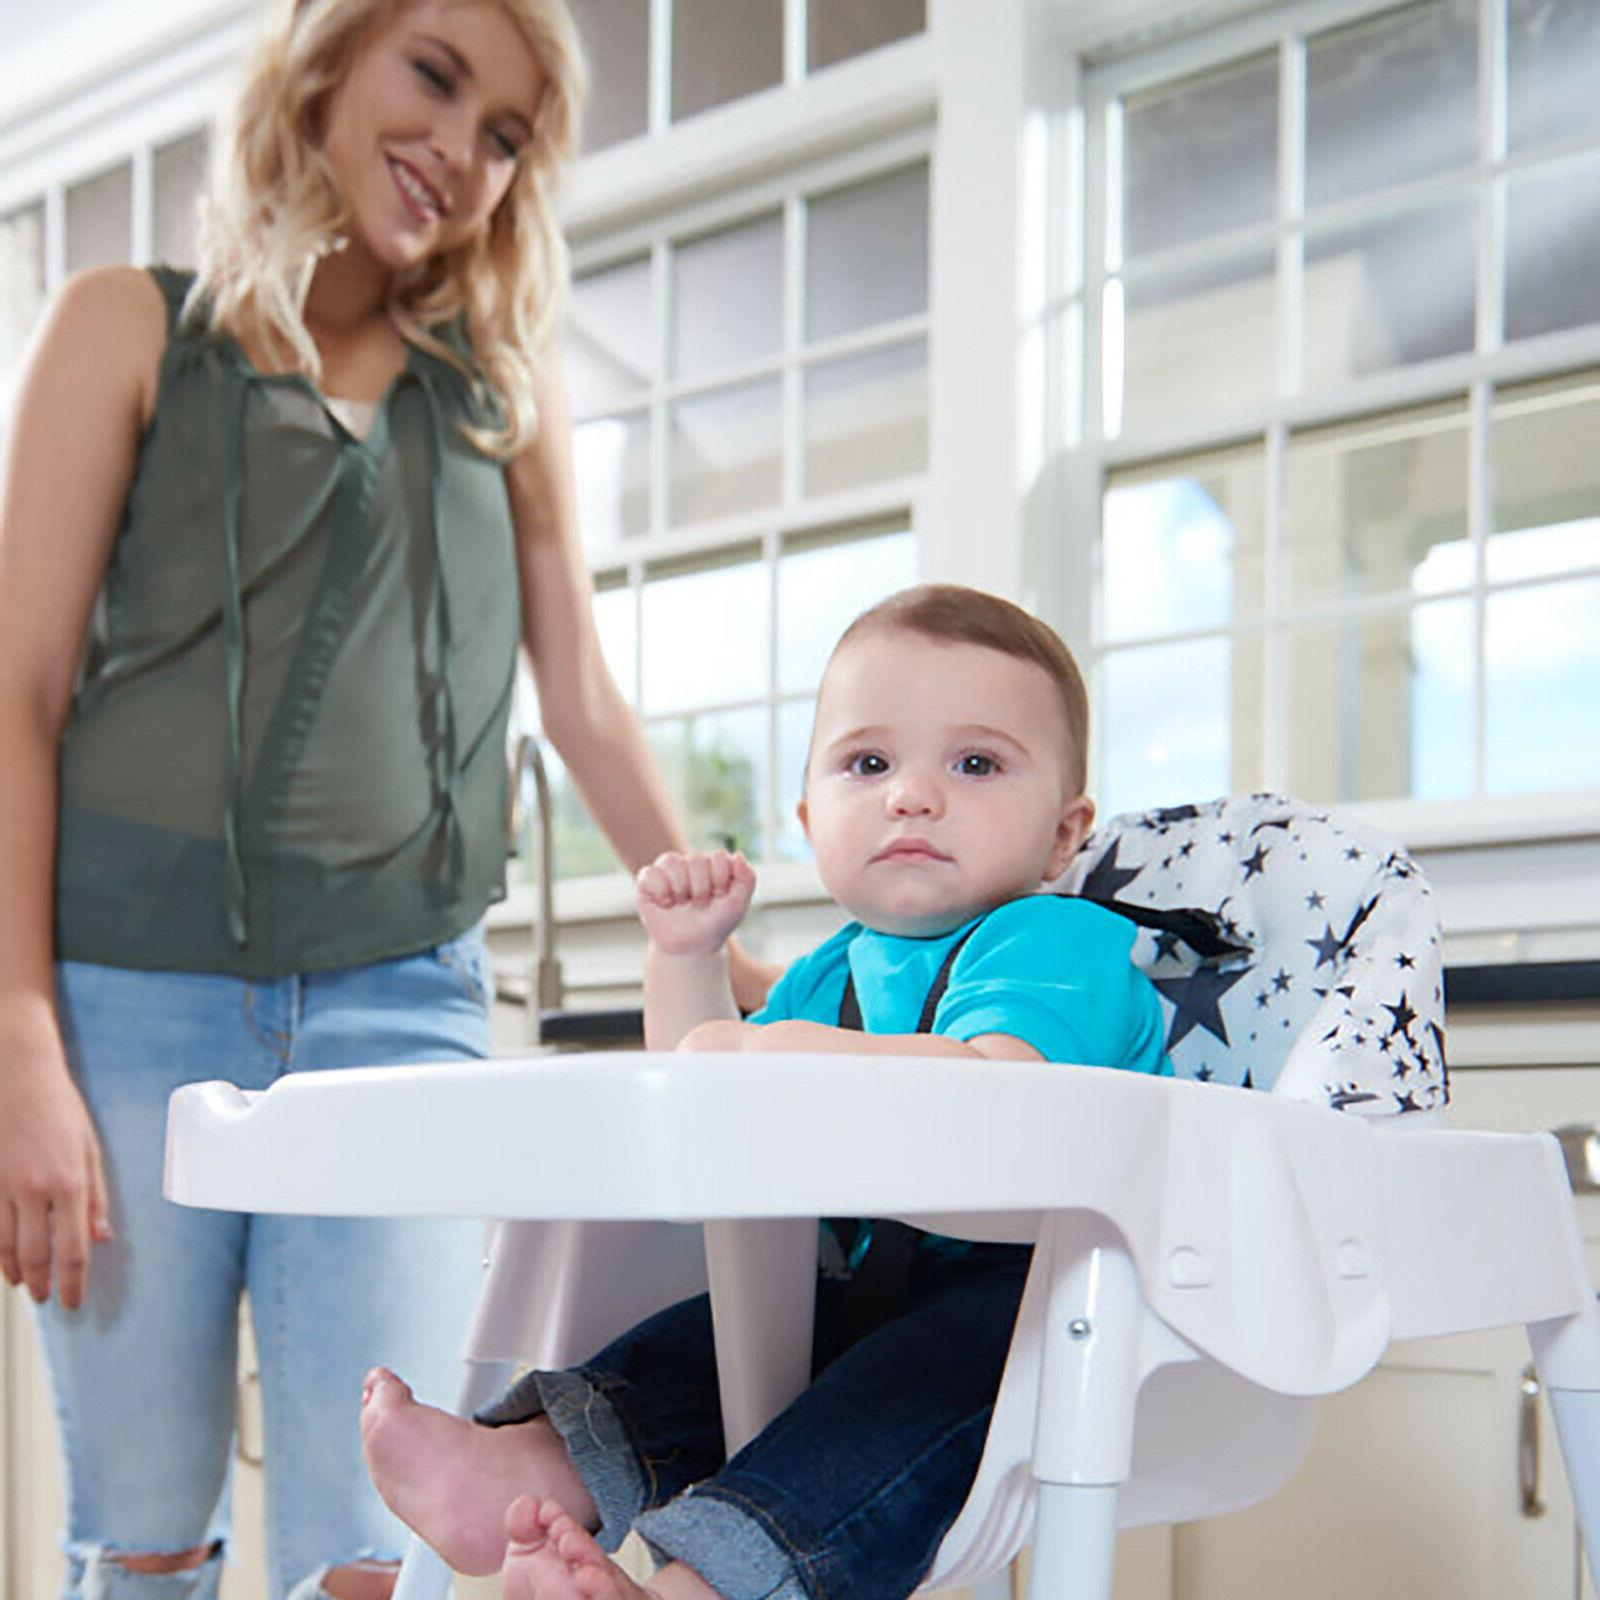 Evenflo 4-in-1 Eat Grow Convertible High Chair Child Learnin